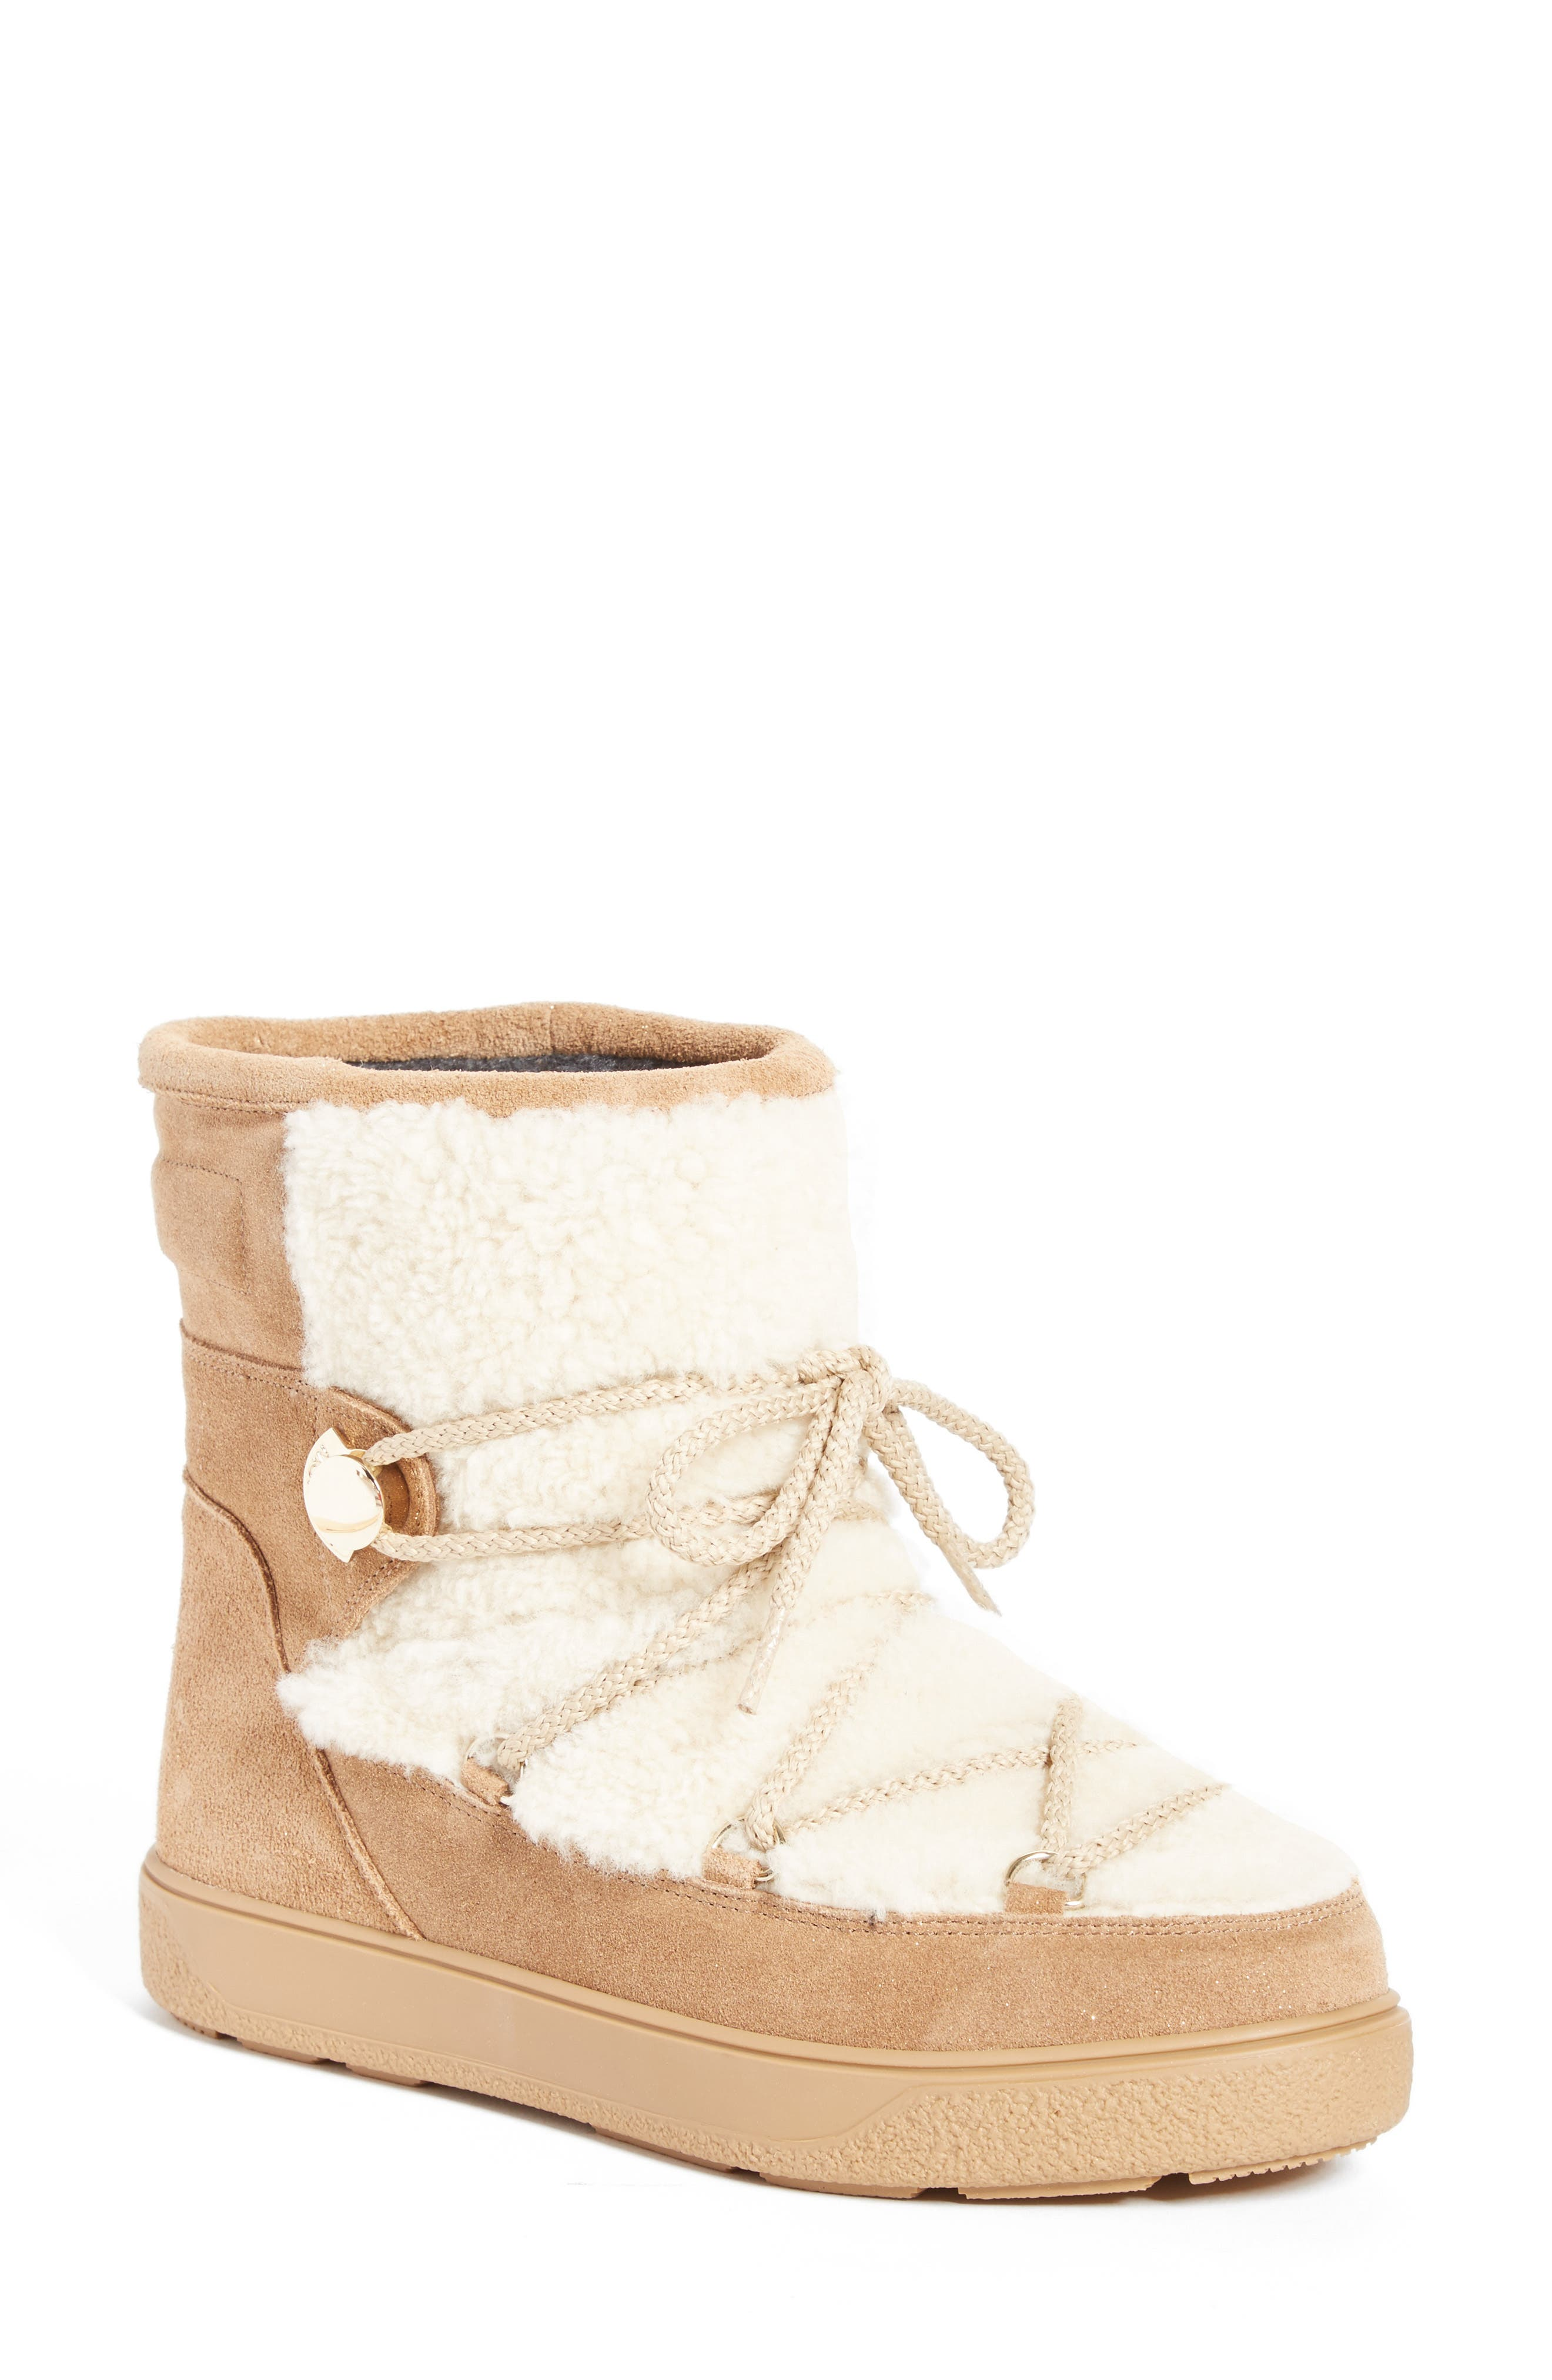 Main Image - Moncler New Fanny Stivale Genuine Shearling Short Moon Boots (Women)